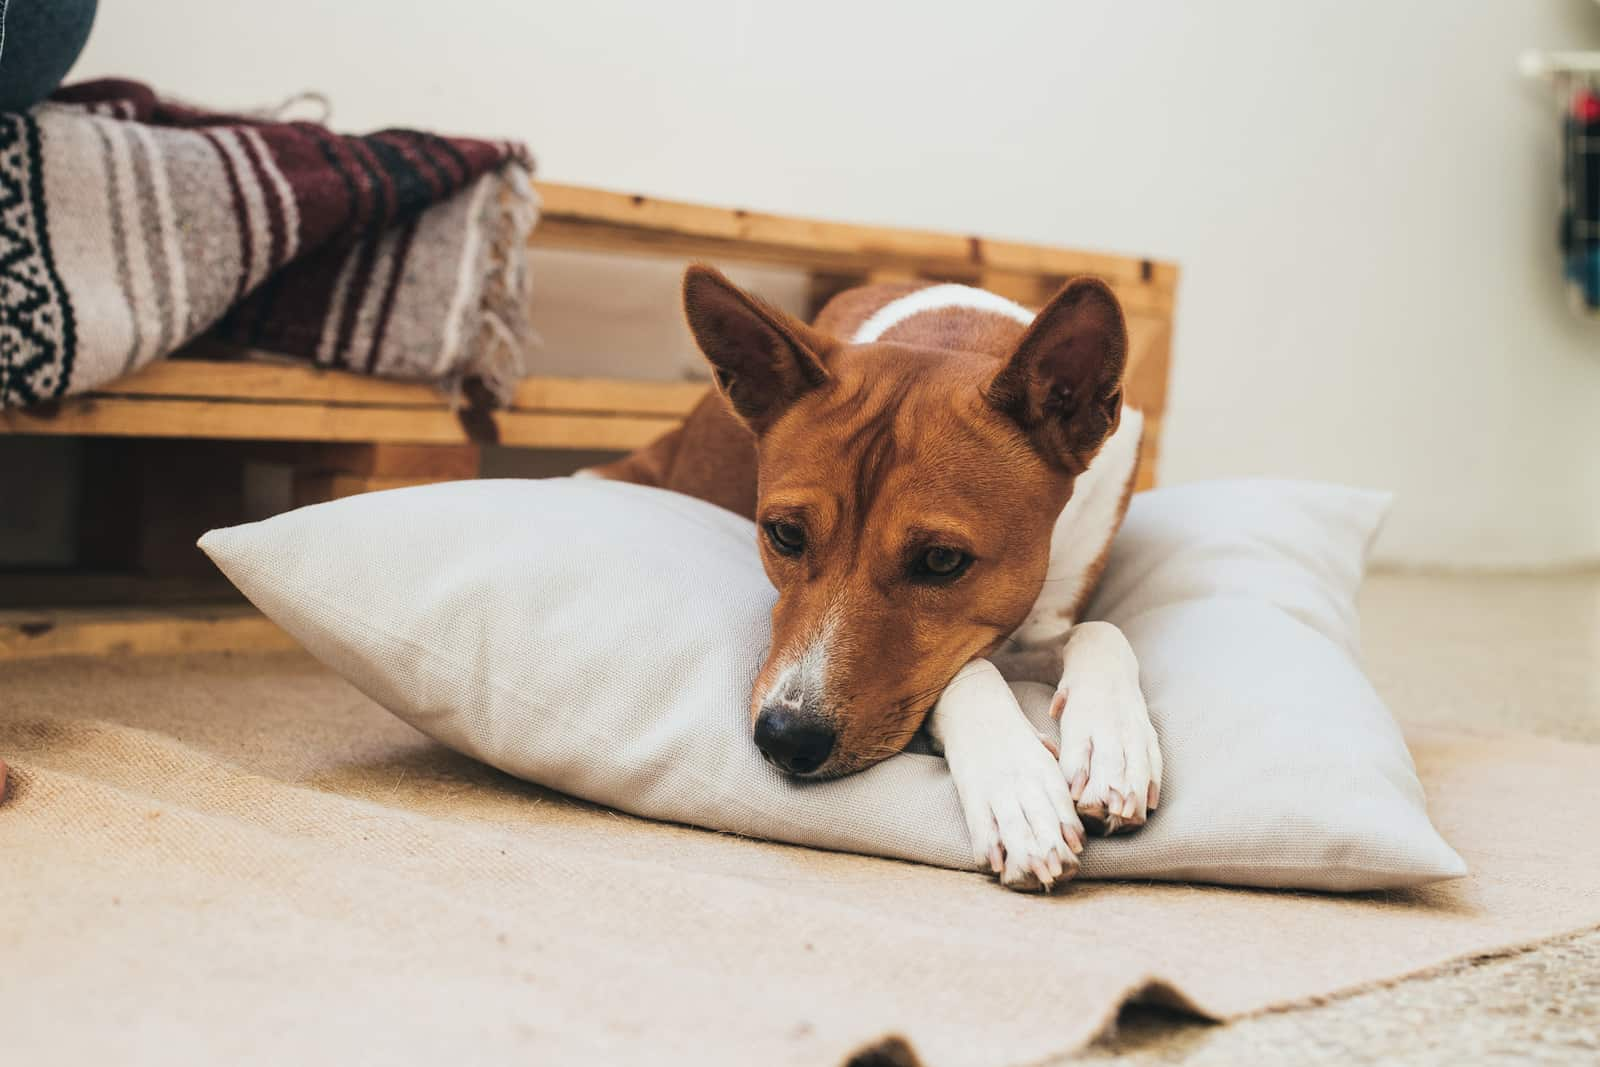 Brown basenji breed dog rests on designer pillow inside apartment.